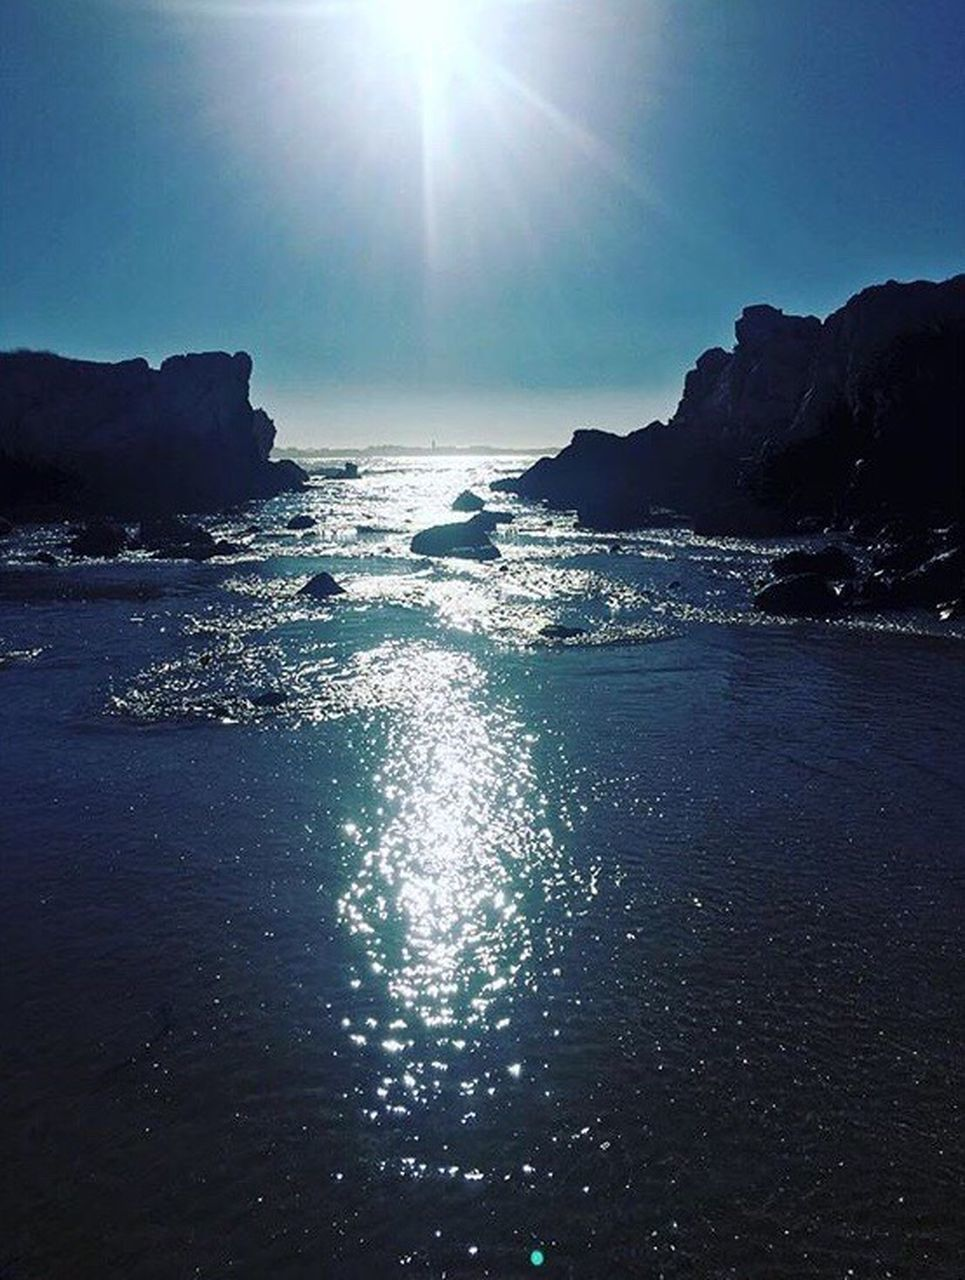 sea, sun, sunlight, scenics, nature, beauty in nature, lens flare, sunbeam, water, tranquility, sky, horizon over water, no people, rock - object, beach, outdoors, tranquil scene, travel destinations, clear sky, day, blue, wave